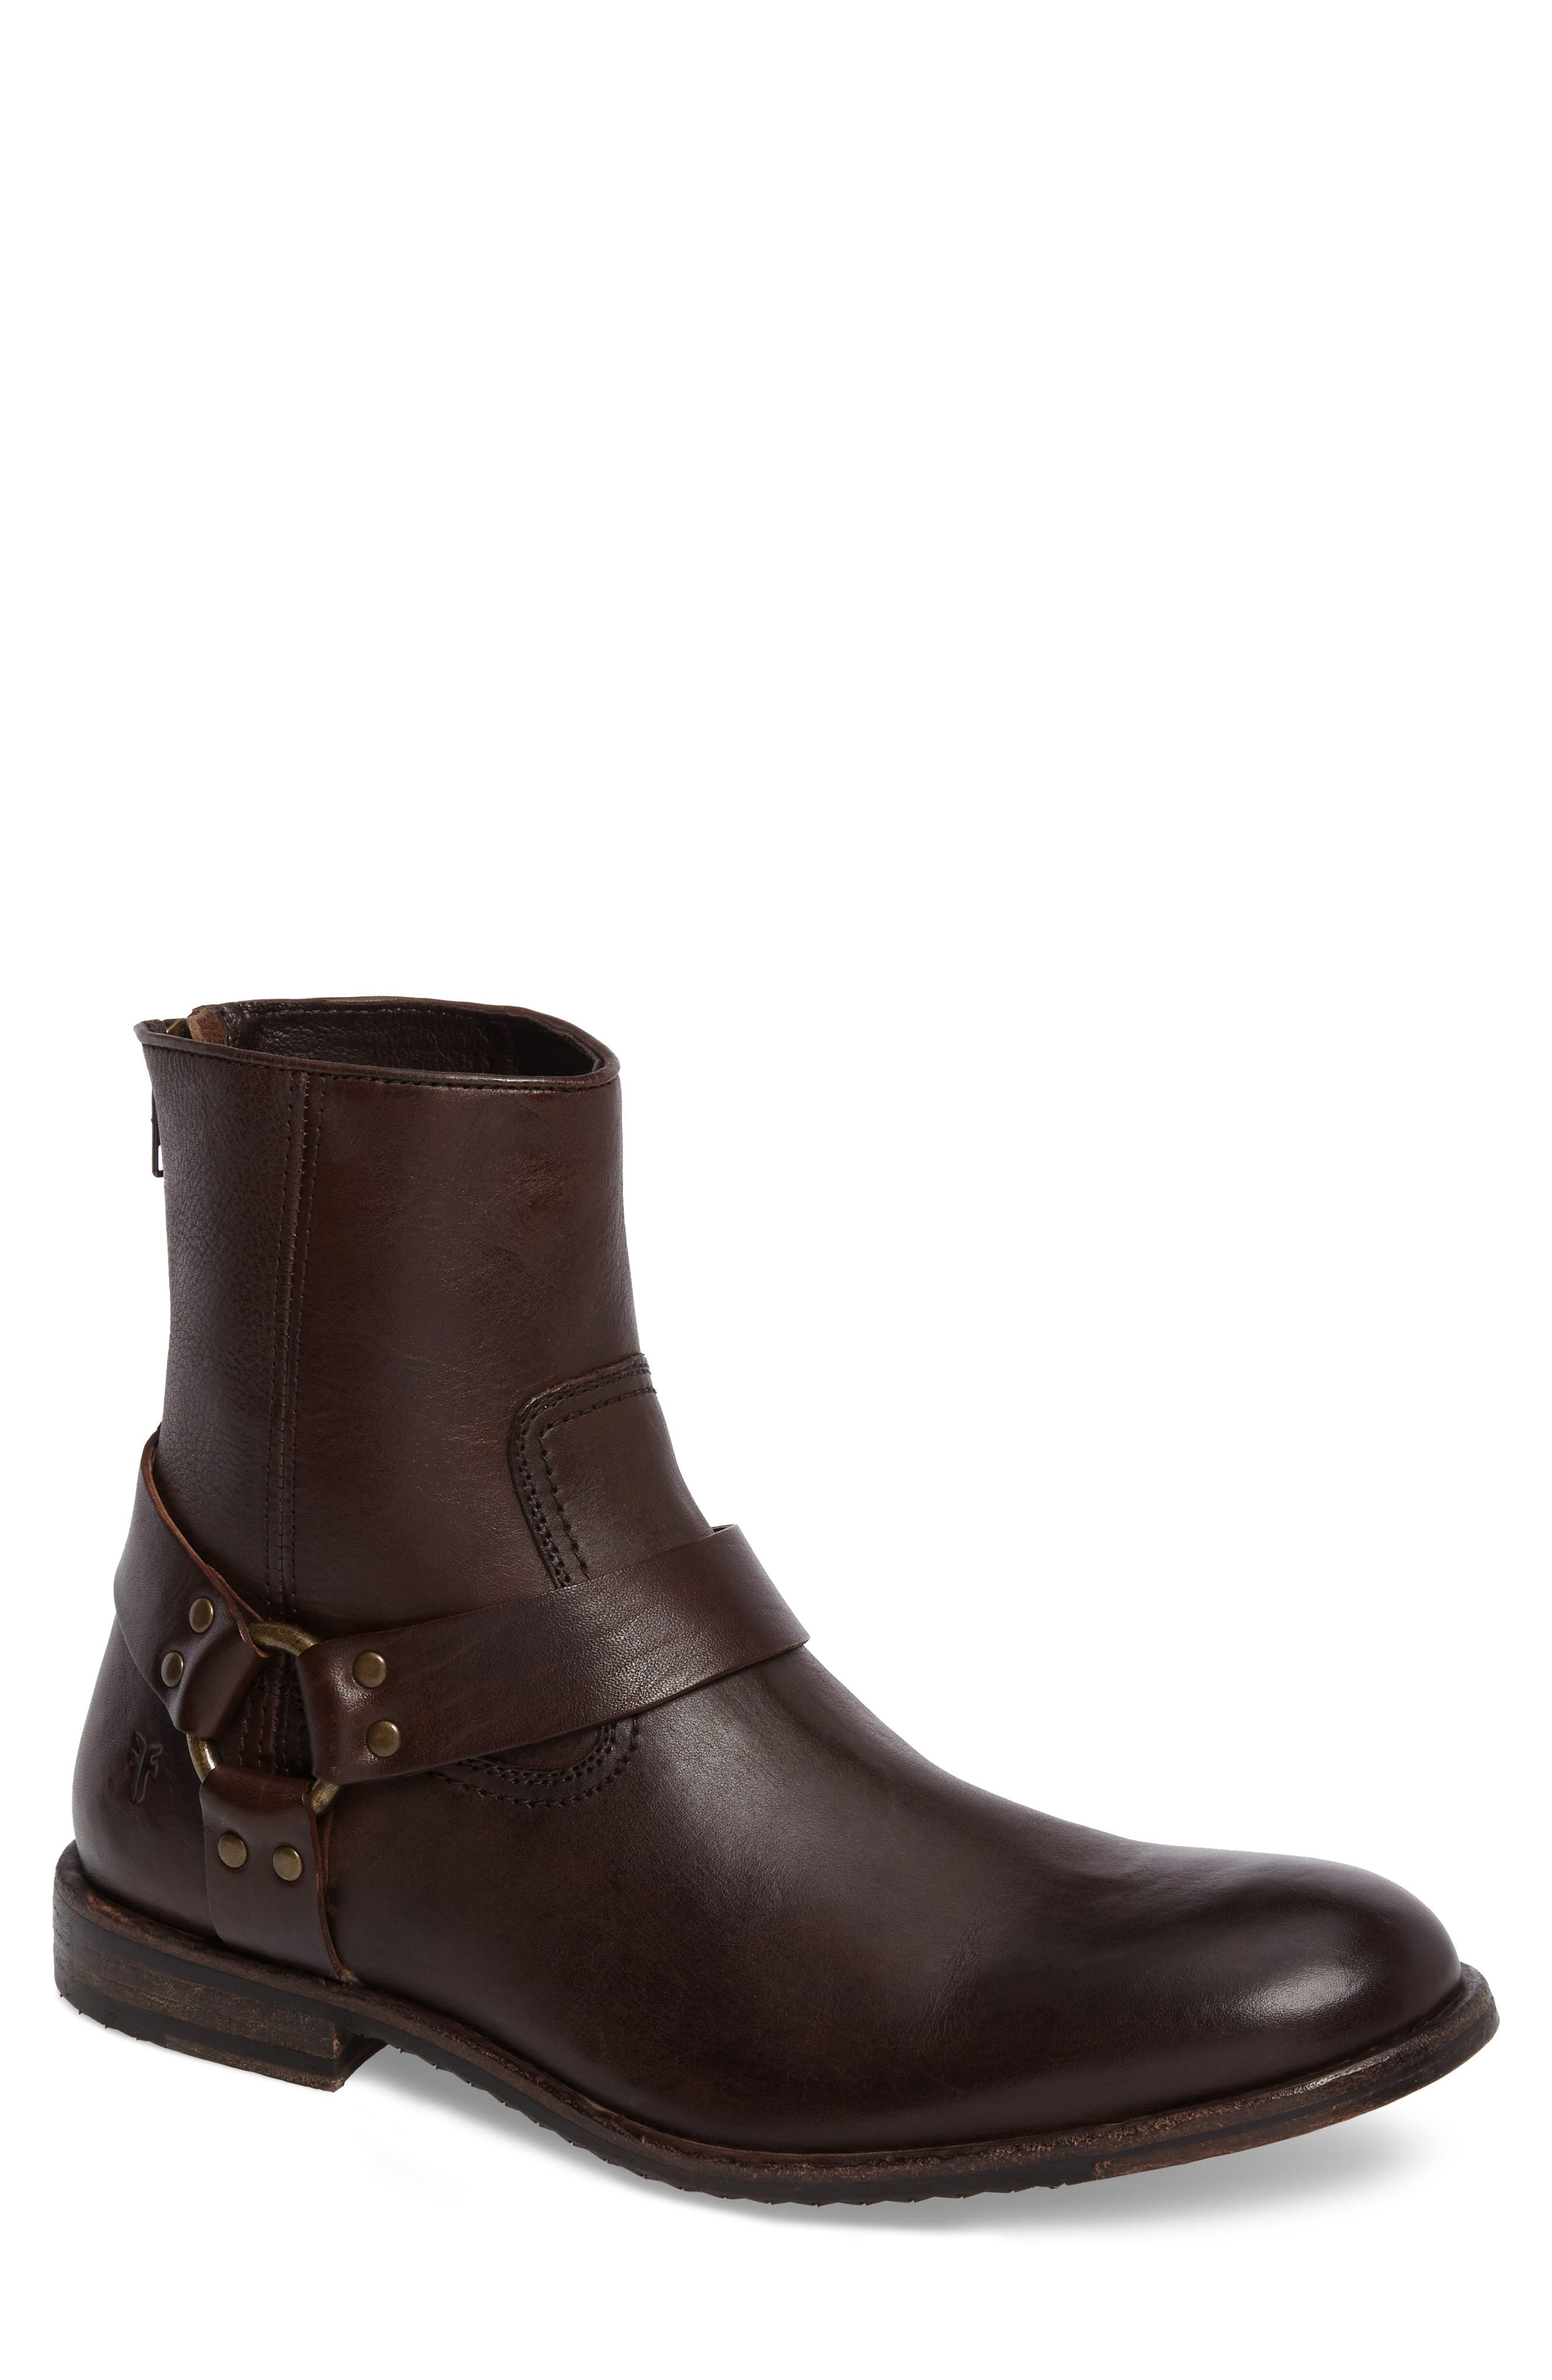 FRYE Sam Harness Boot, Main, color, 200